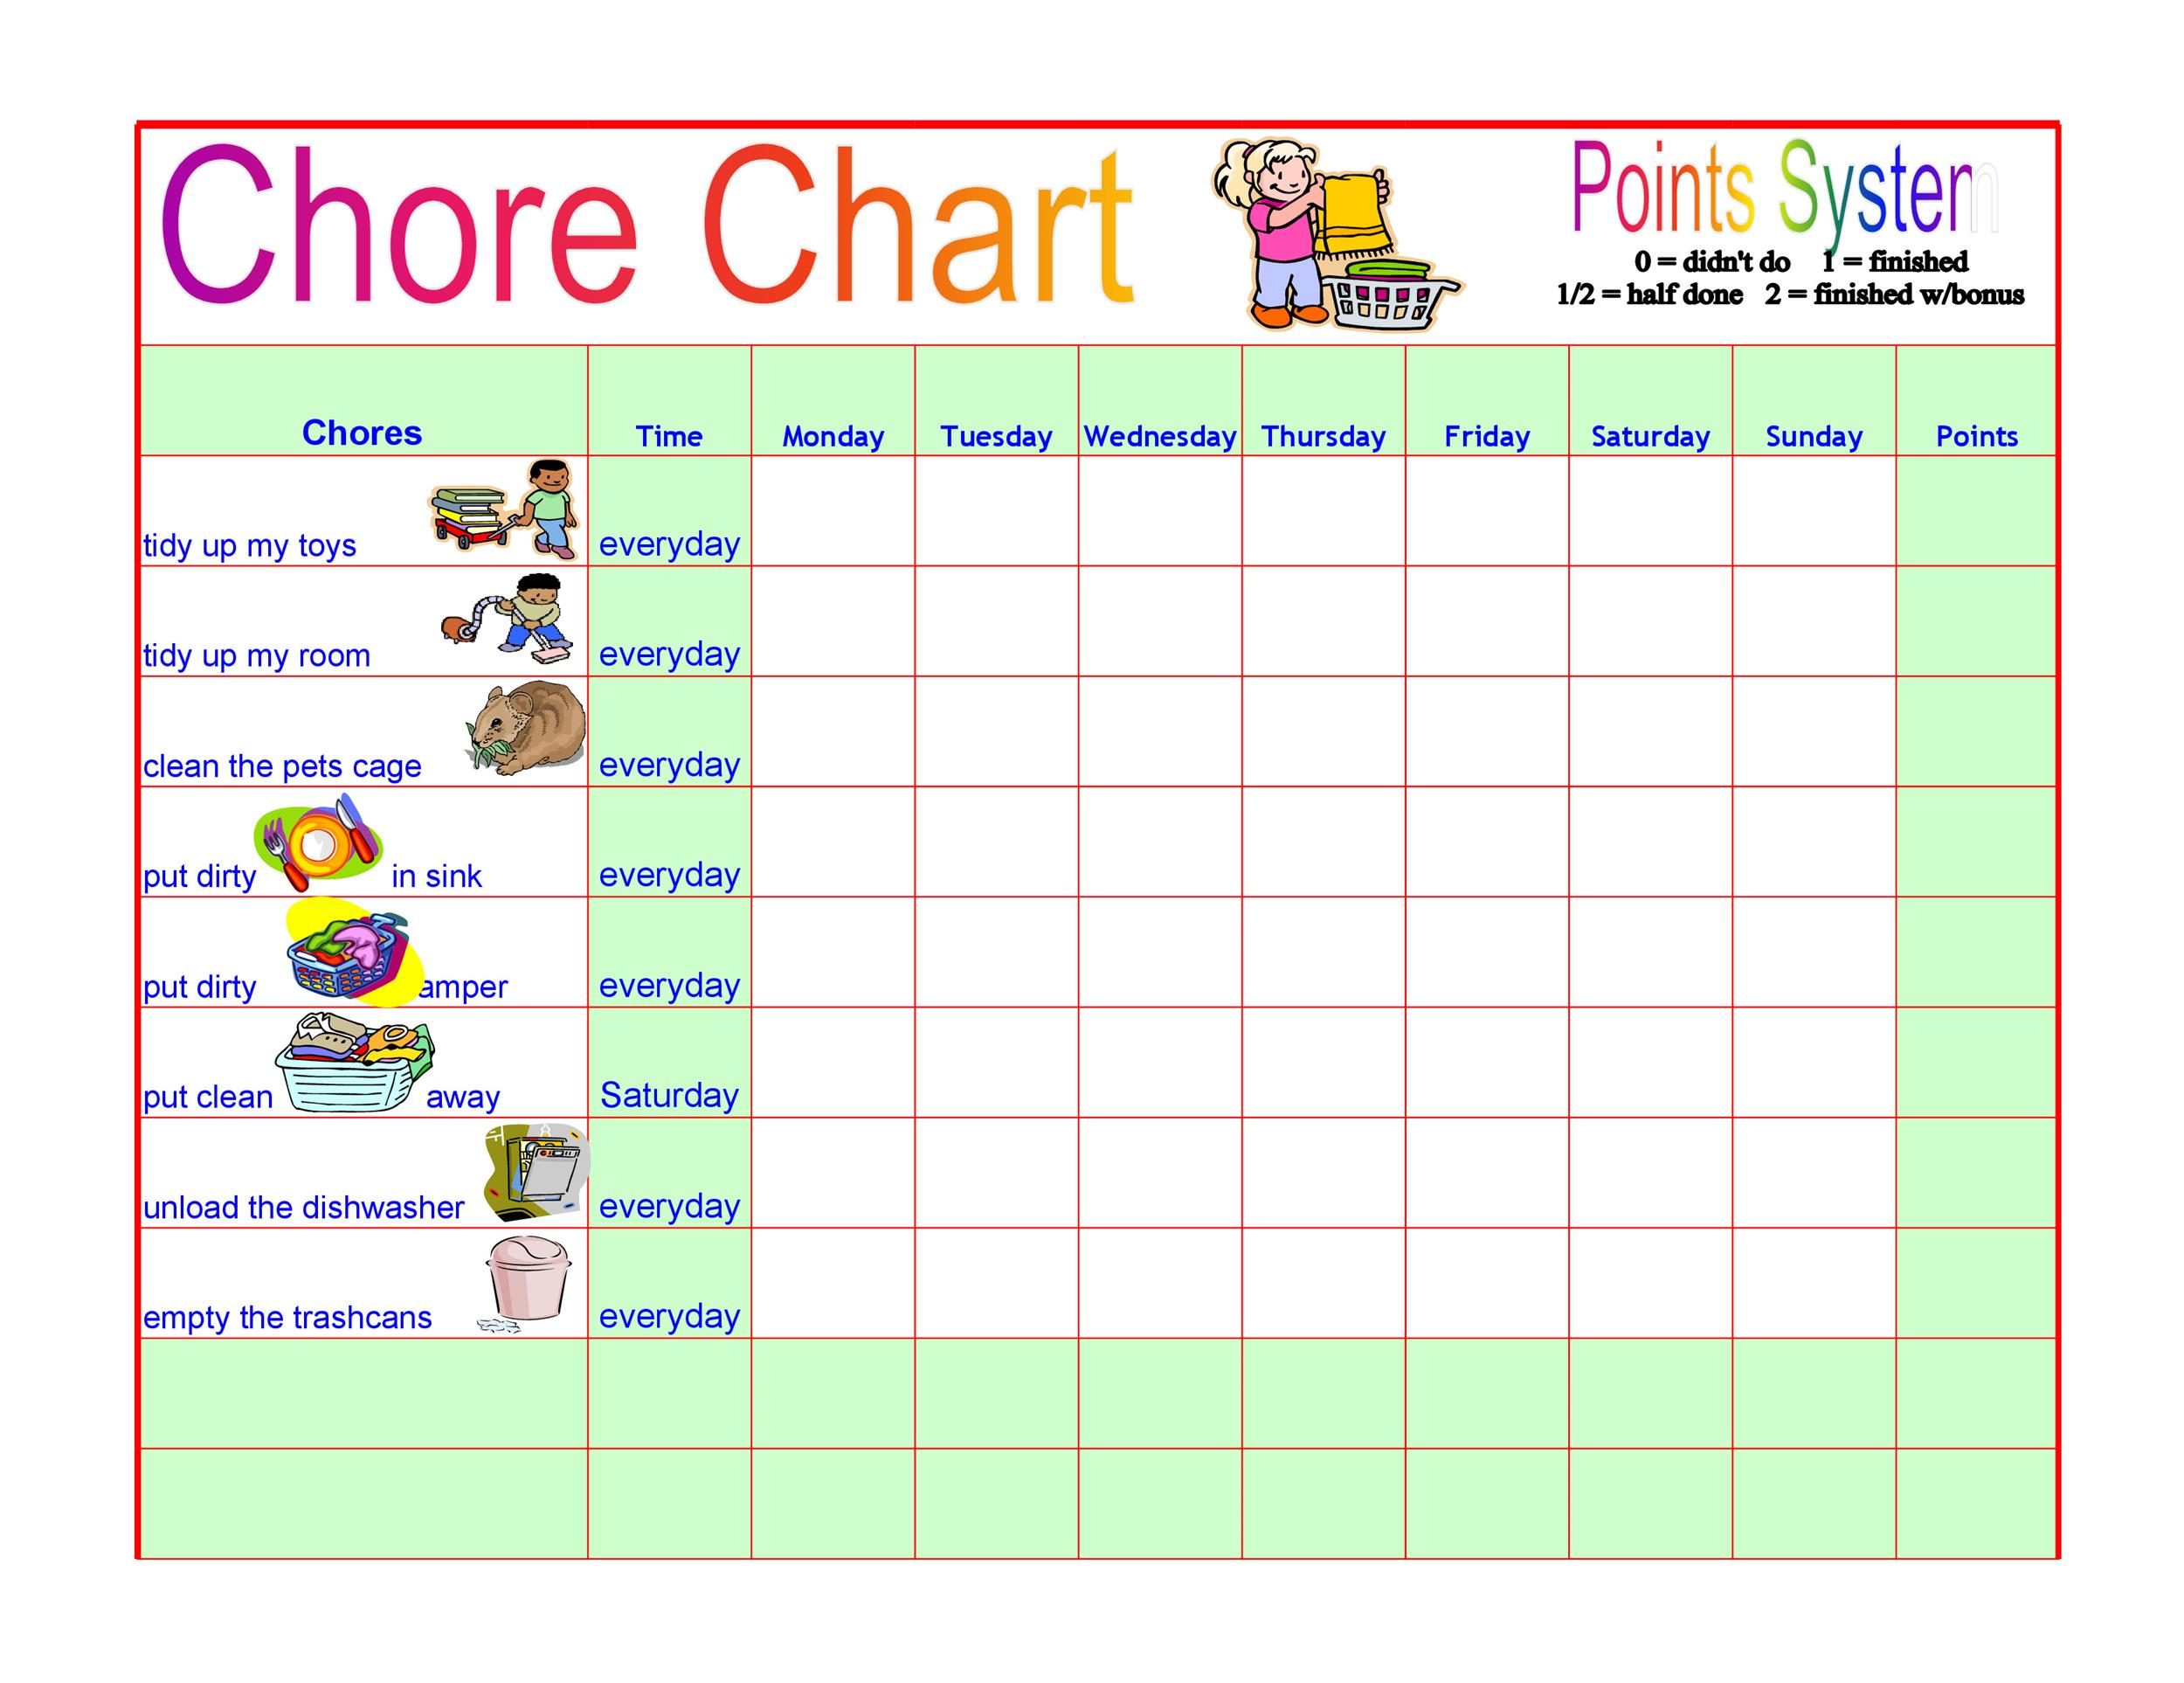 graphic about Printable Chore Chart for Kids titled 43 No cost Chore Chart Templates for Children ᐅ Template Lab